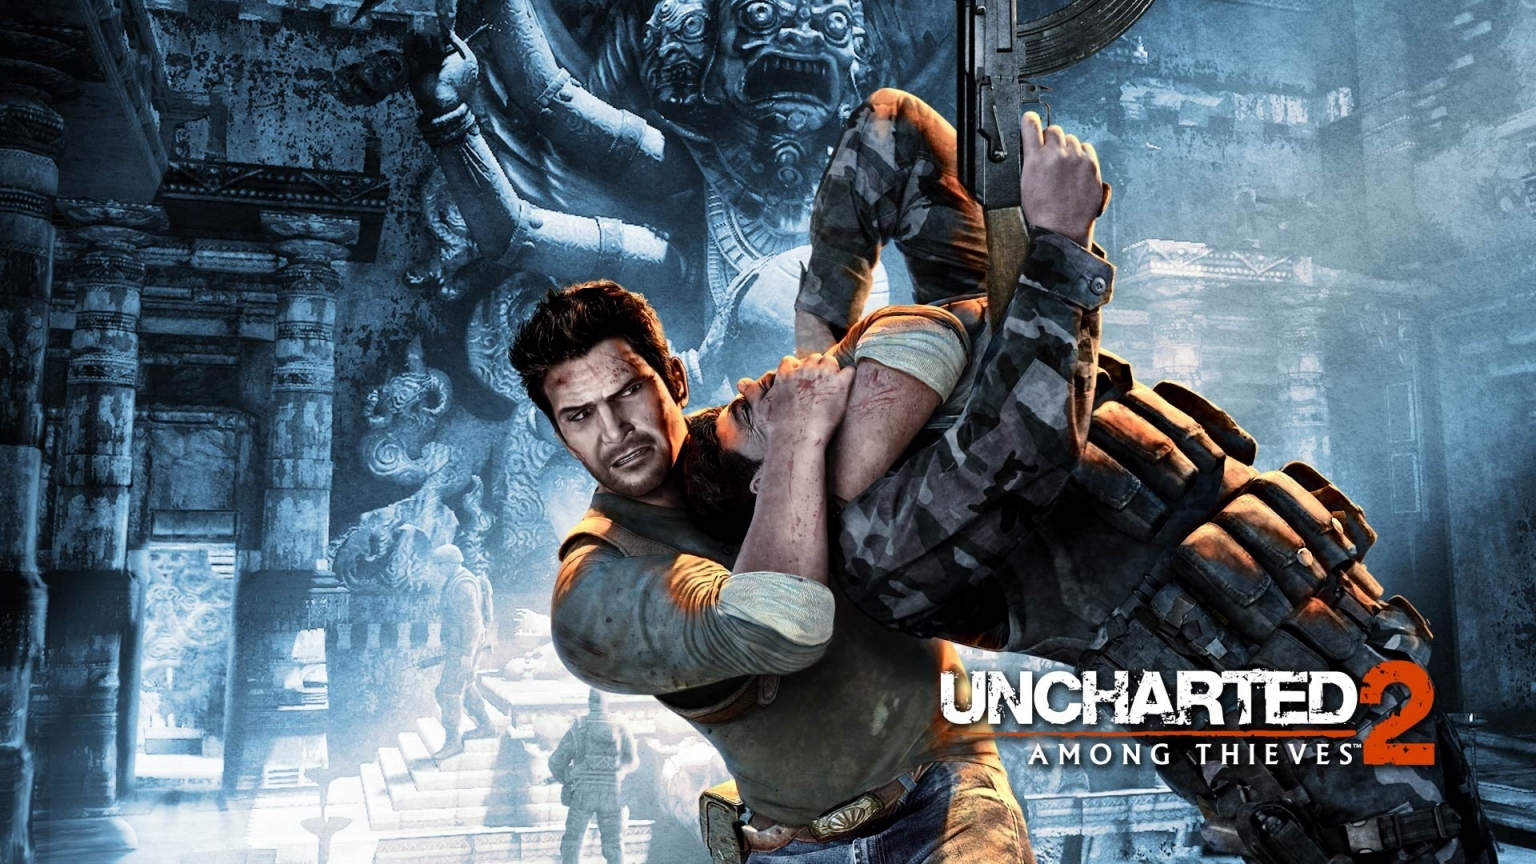 Uncharted 2: Among Thieves for 1536 x 864 HDTV resolution